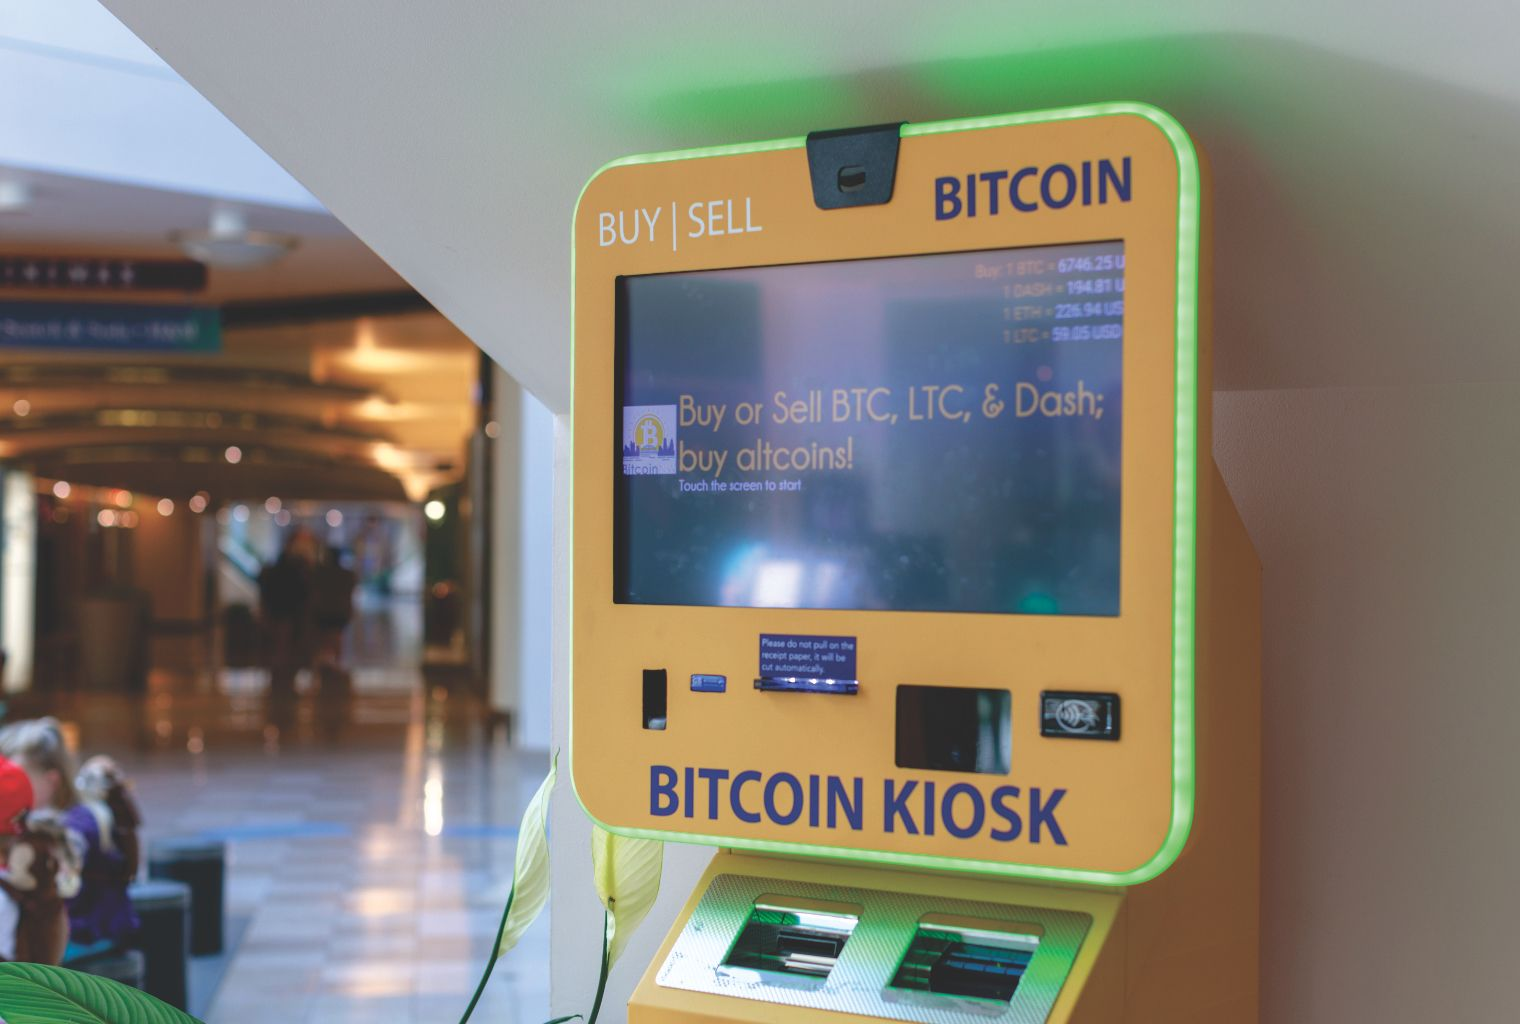 The Presence of Bitcoin ATMs in the US